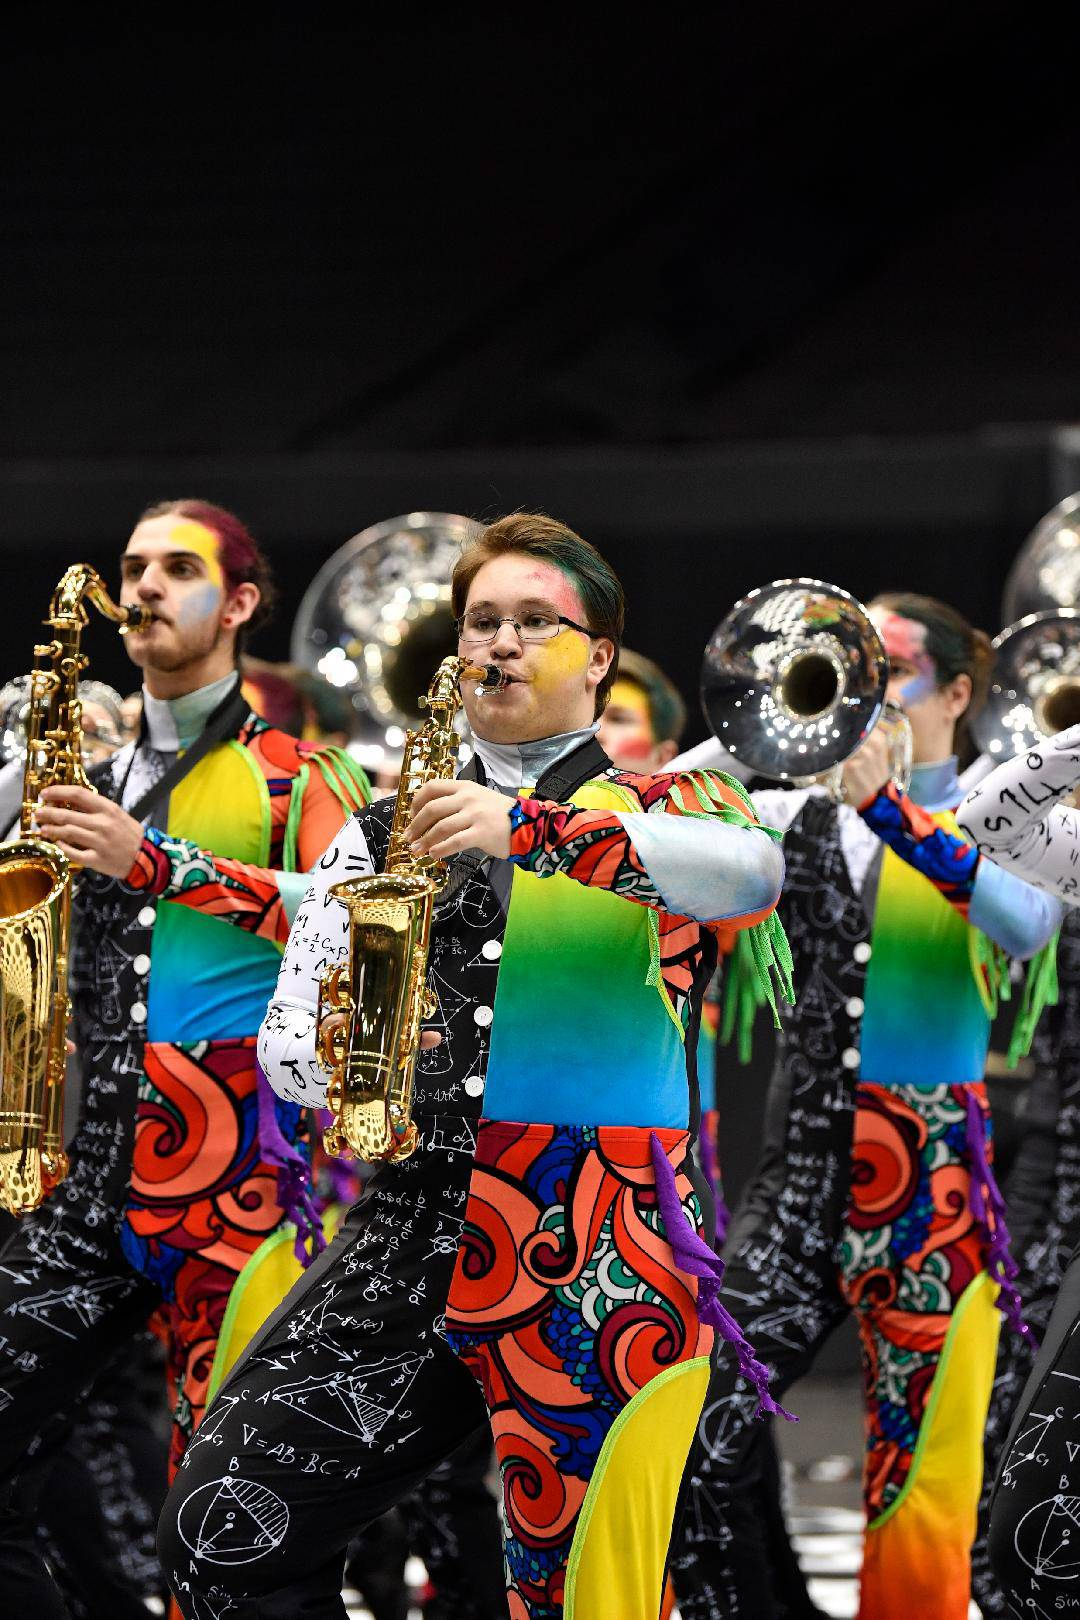 Rosemont-based Chromium Winds was awarded gold in Independent Open at this year's Winter Guard International Percussion and Winds World Championships in Dayton, Ohio.